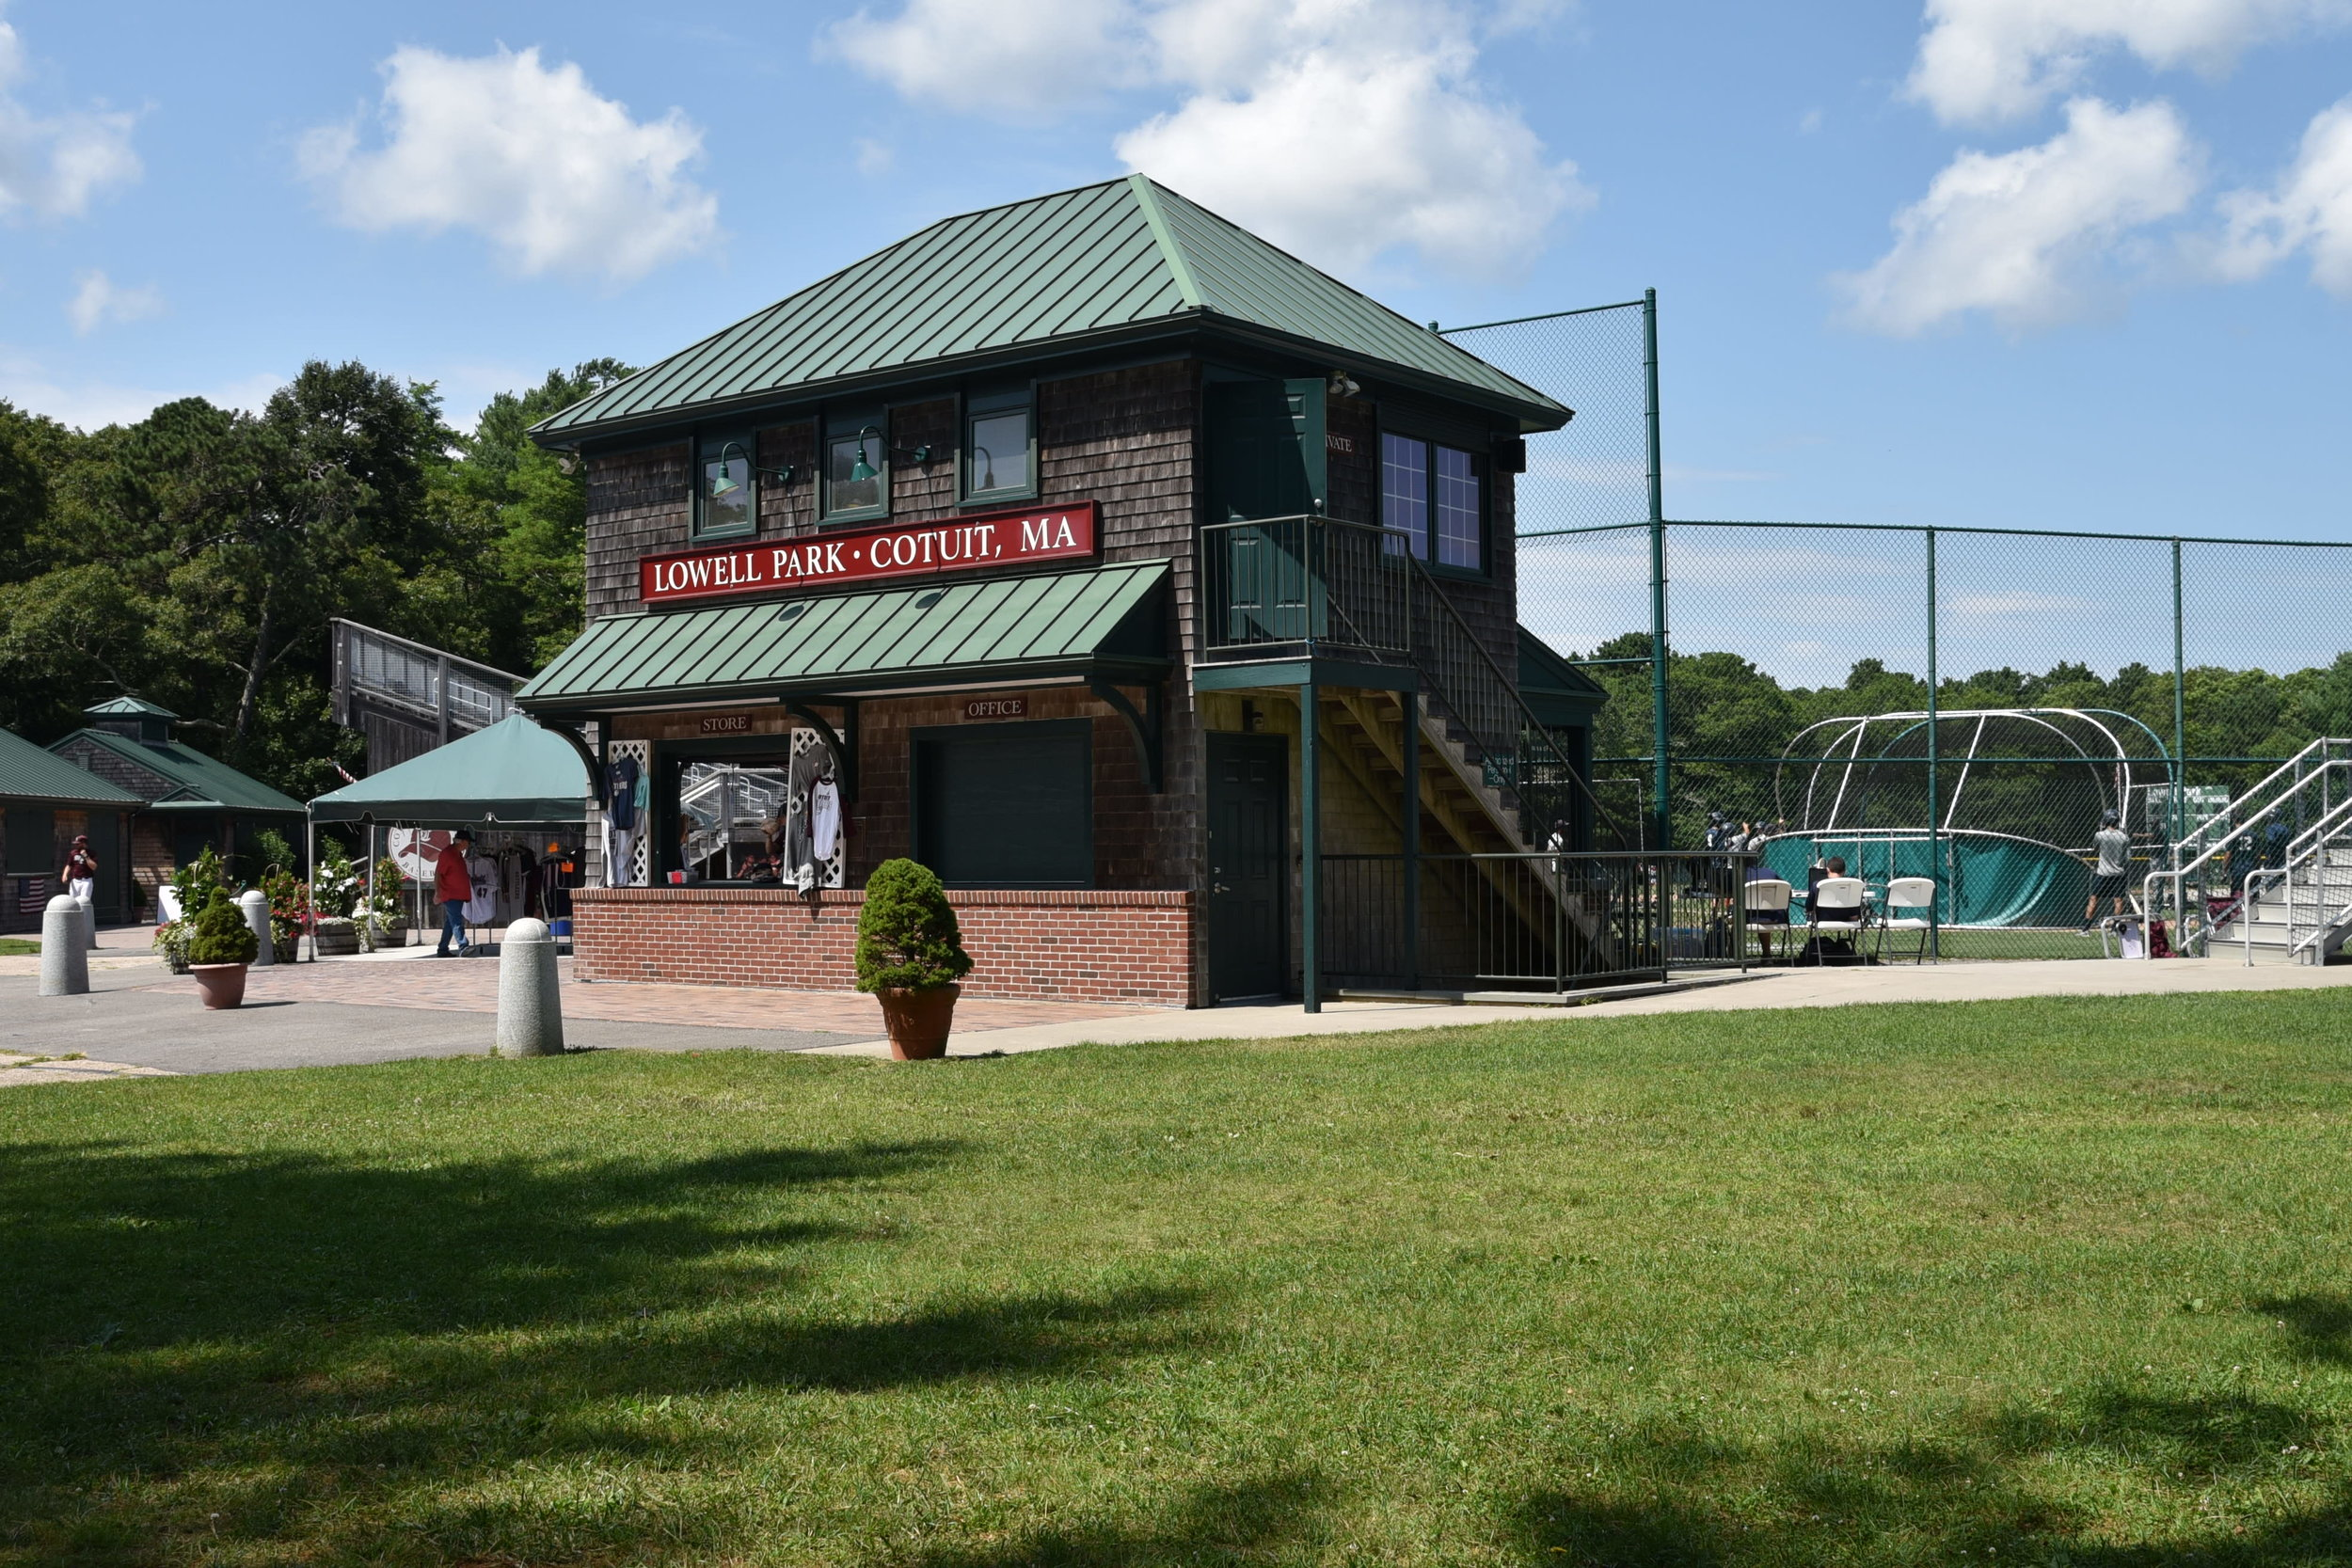 Following the offensive output from the Cotuit Ketteleers in Game 2 vs the Wareham Gatemen many people wonder if the road to the title runs through Cotuit.  The press box at Lowell Park in Cotuit.   Photo by Harrison Meyers